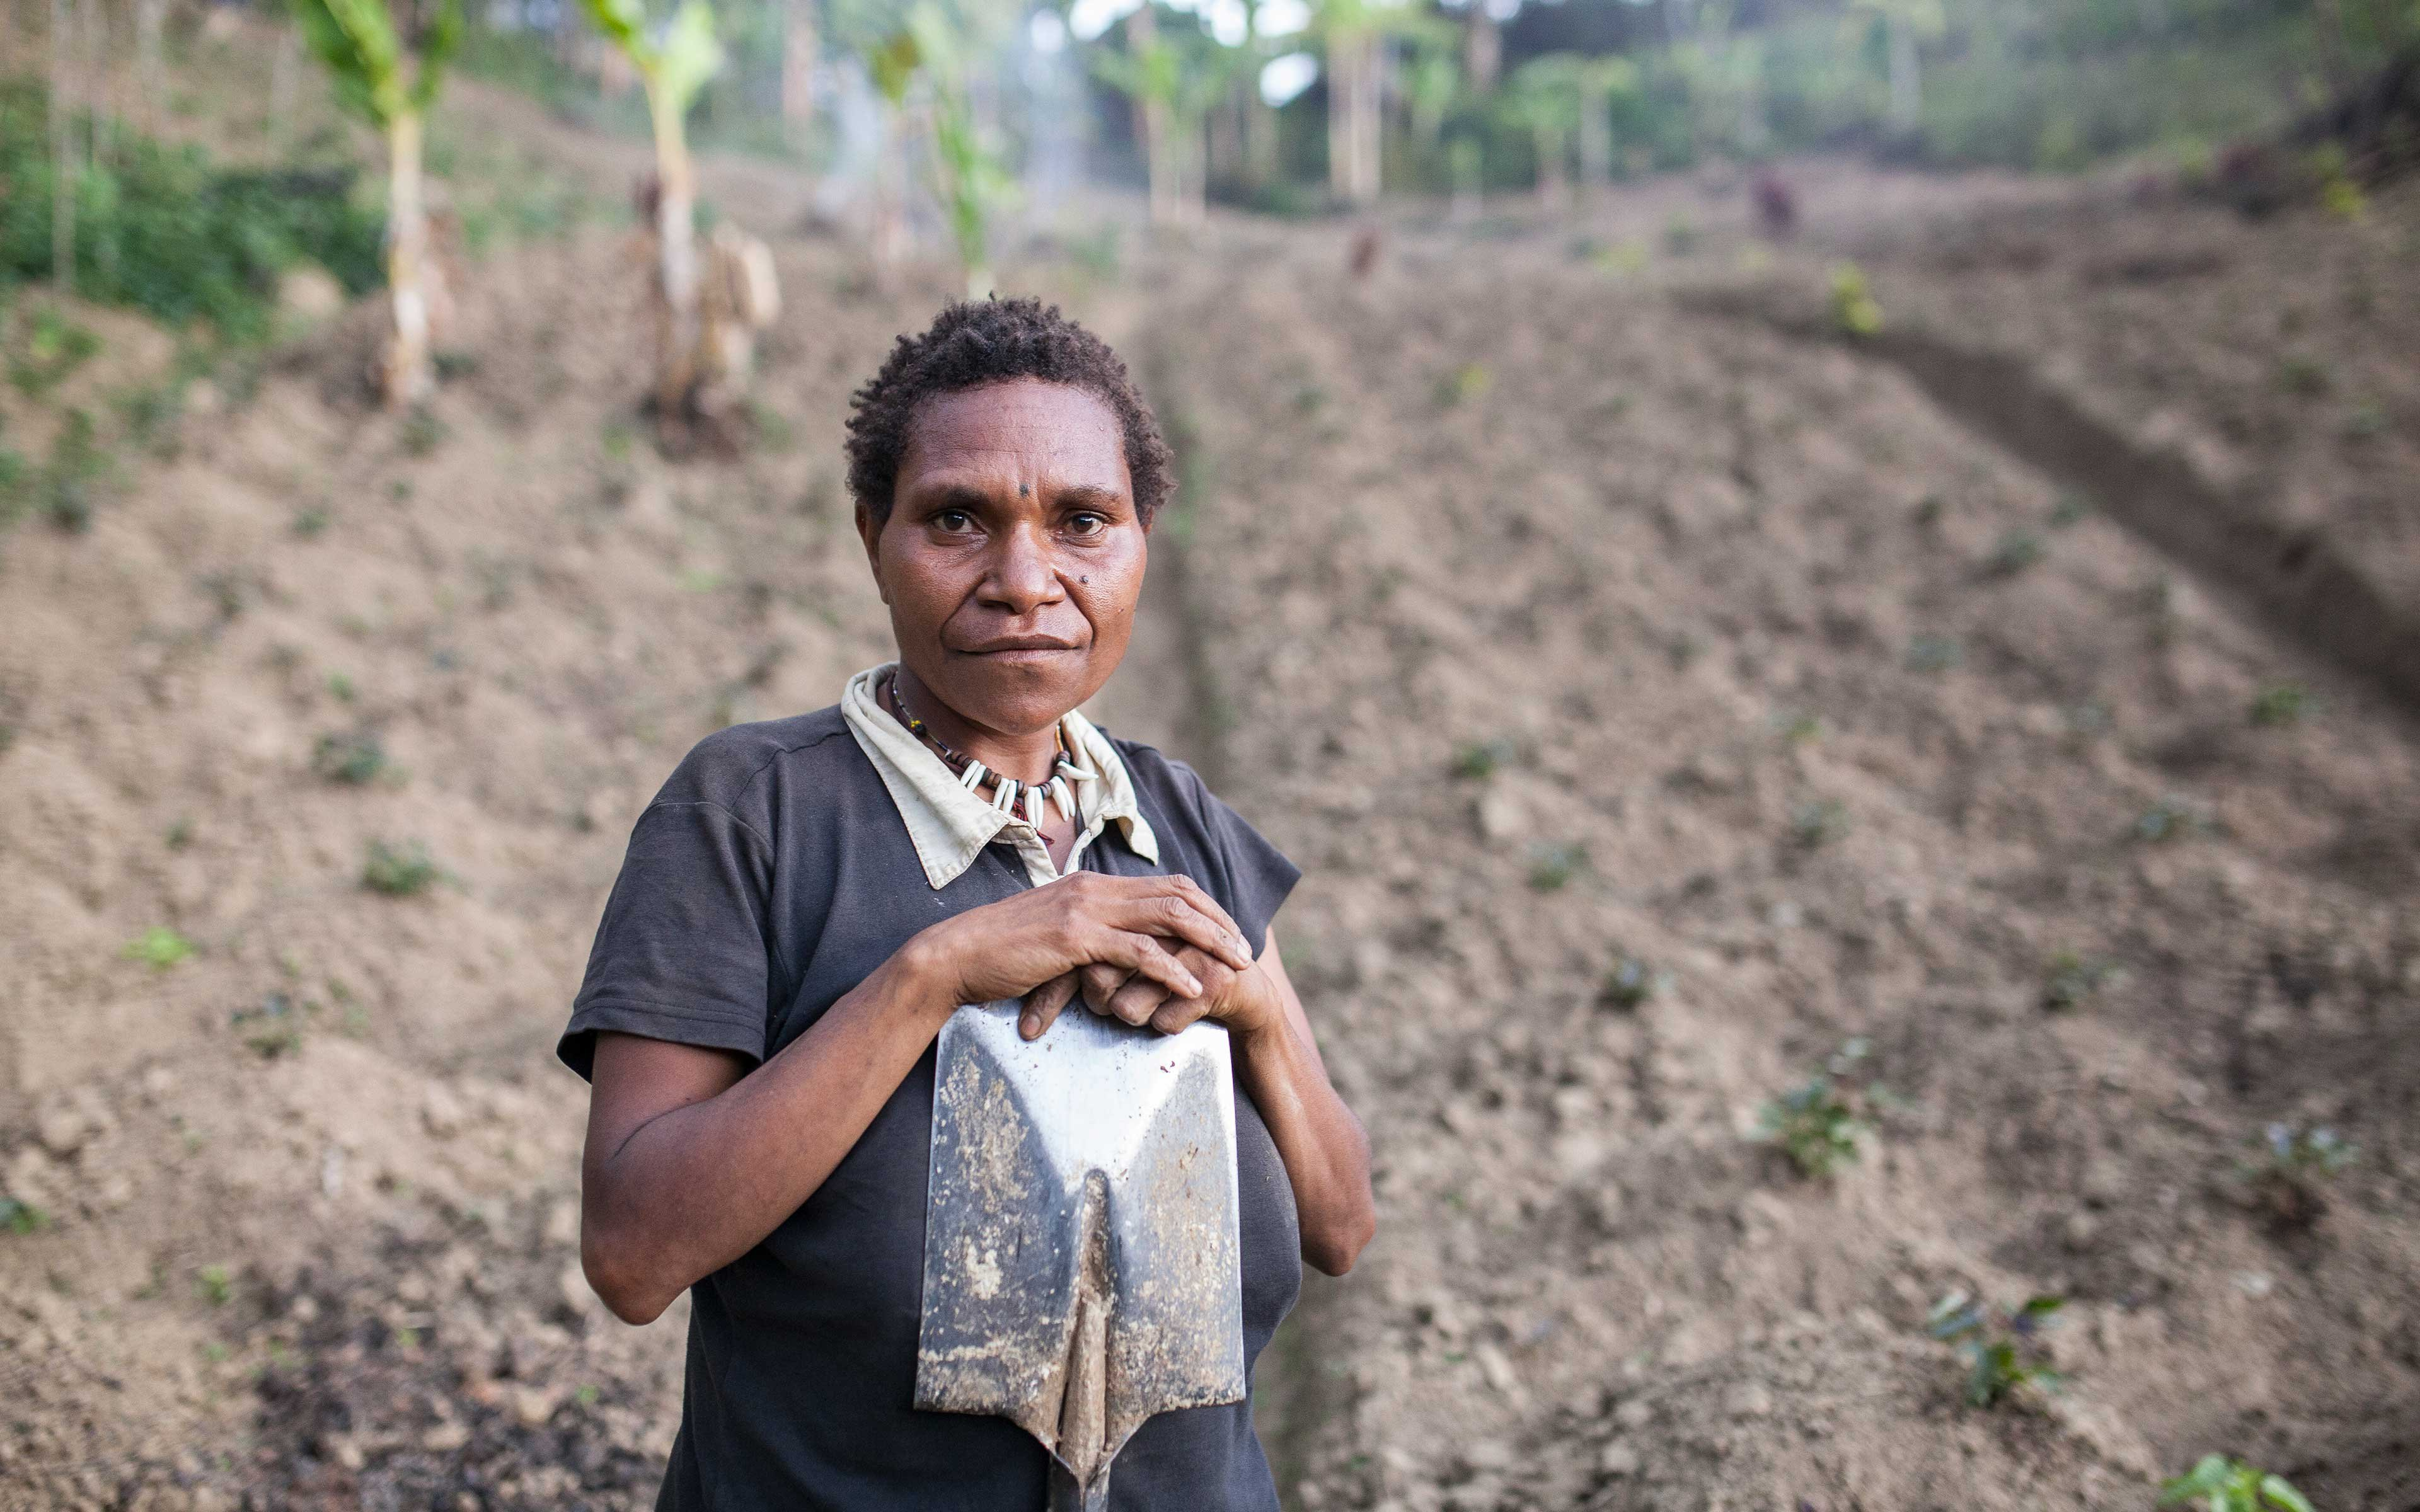 Lack of rain stunted the growth of the sweet potatoes Margaret Thomas planted. Normally, each plant would produce four or five potatoes. This season she expected just one or two. The crop is a vital source of income for Thomas and her family.